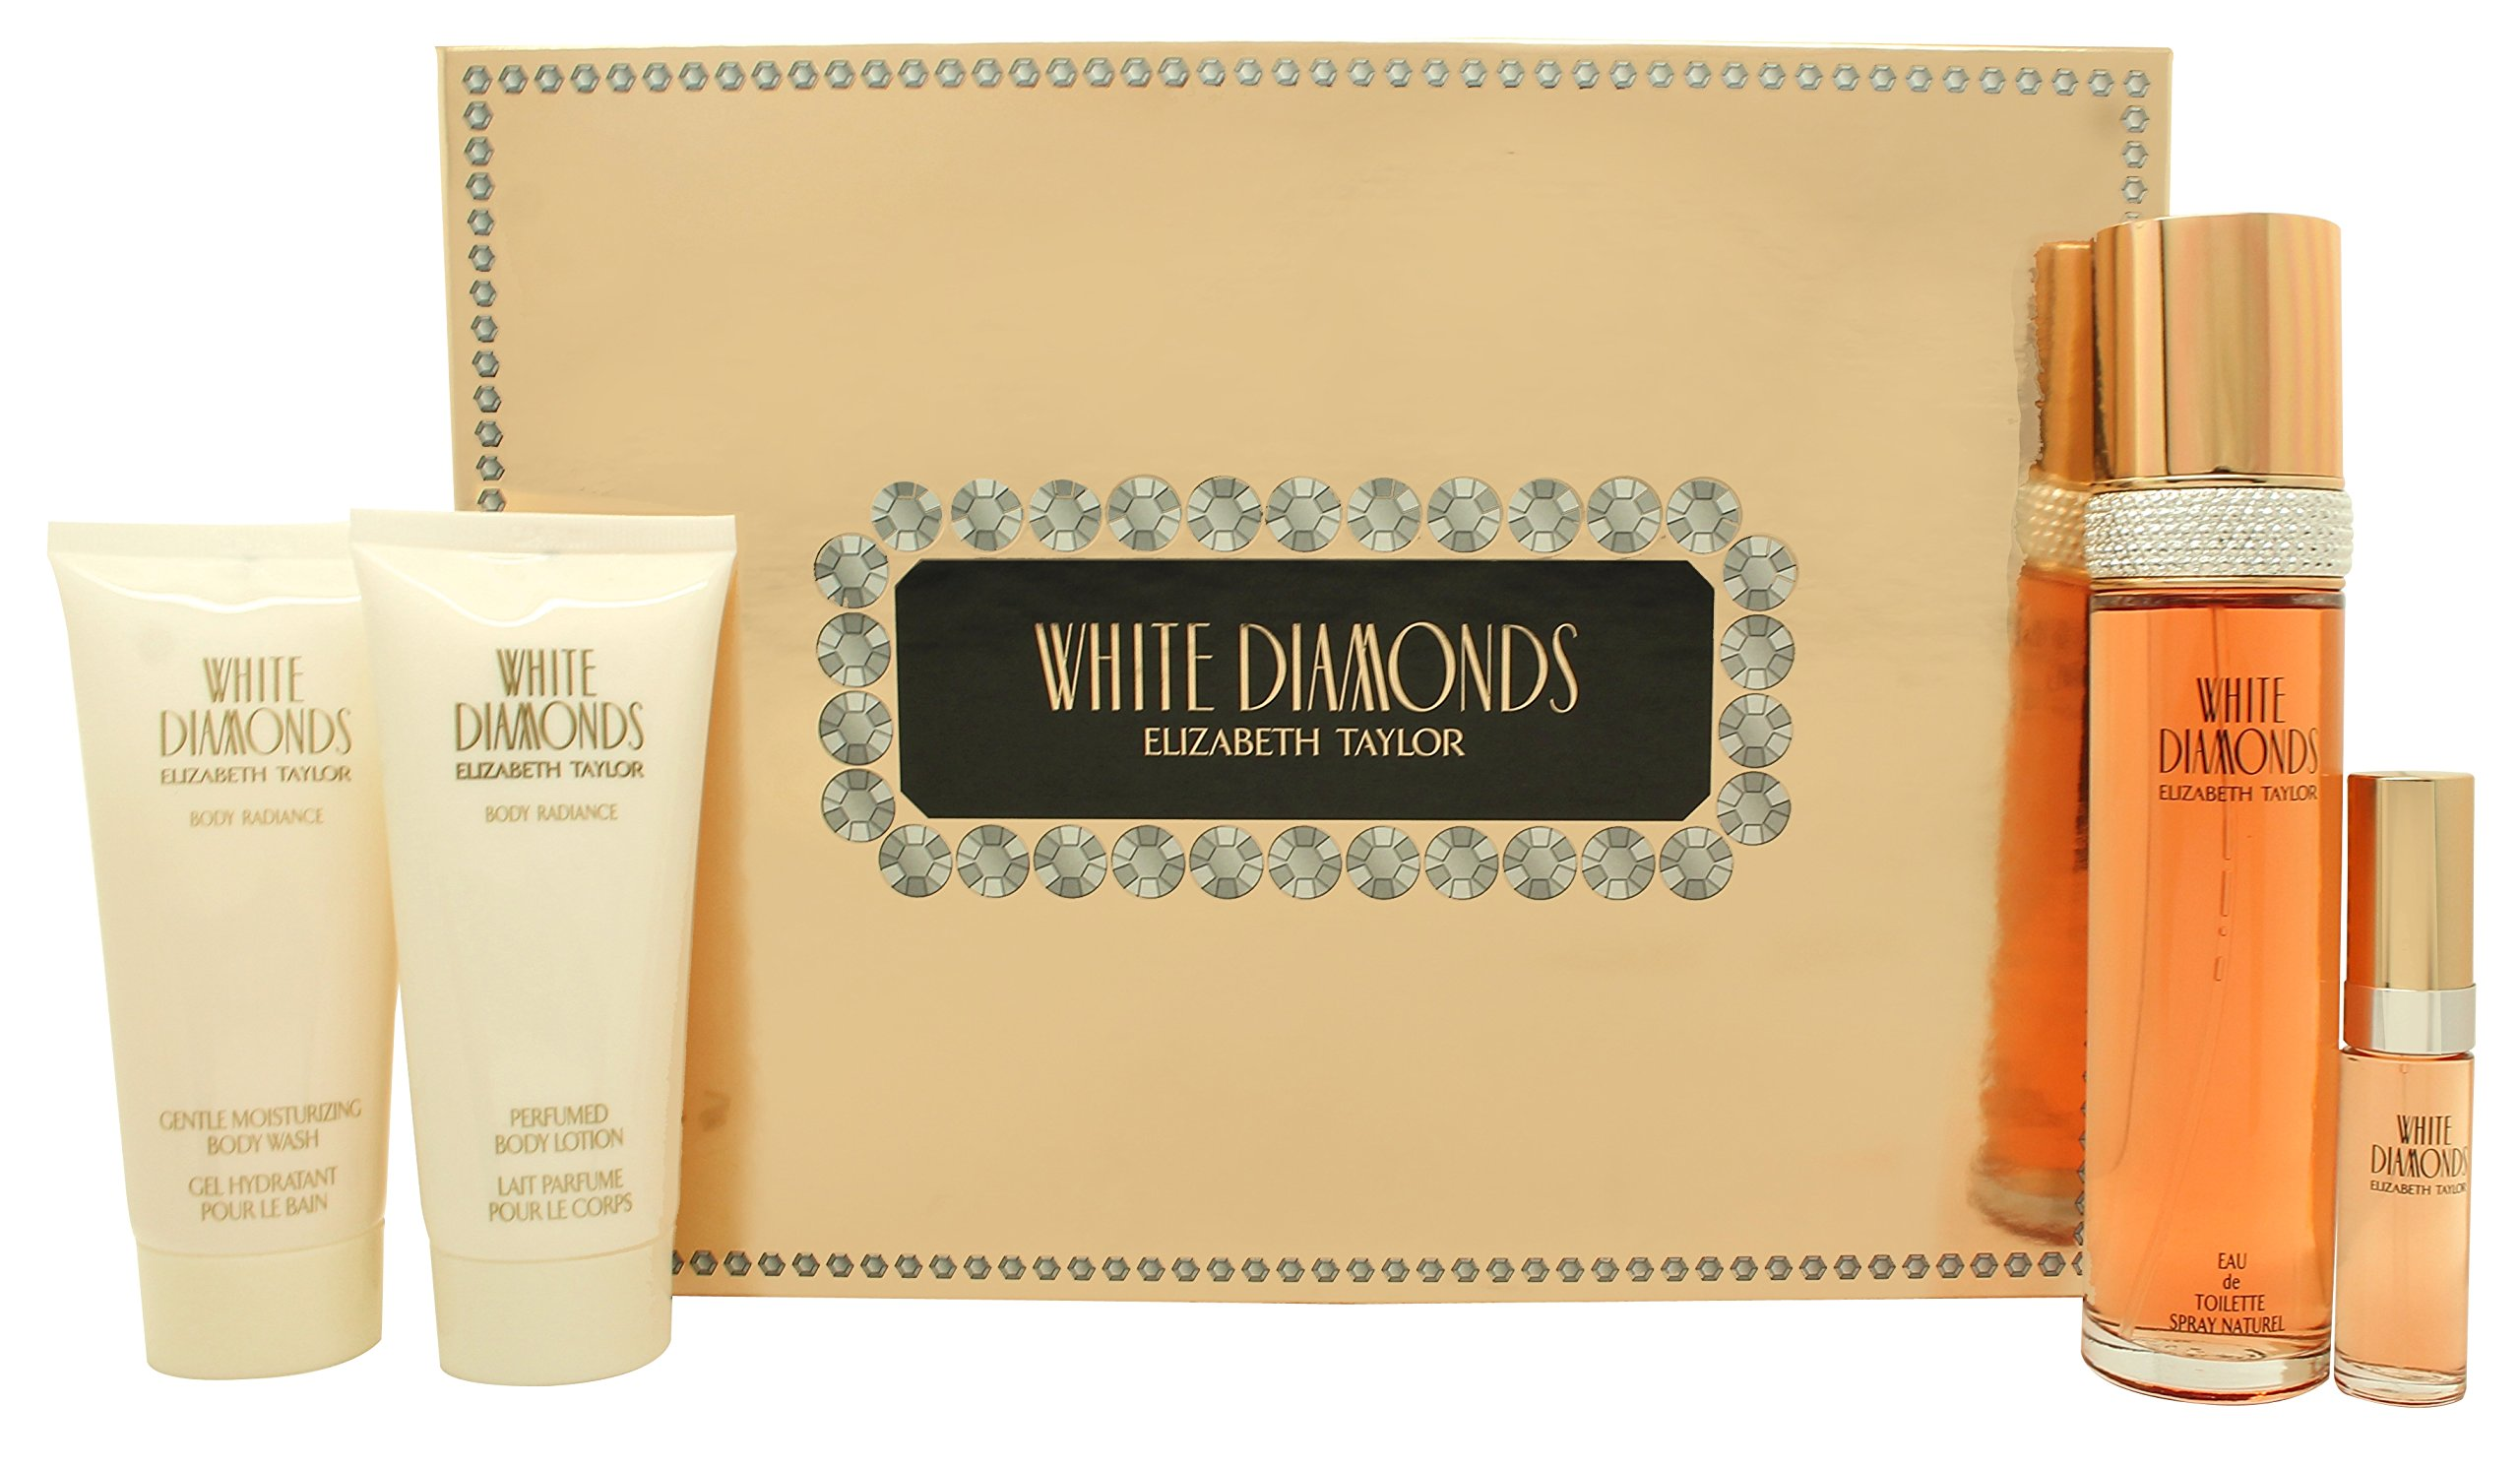 Elizabeth Taylor White Diamonds Gift Set 3.4oz (100ml) EDT + 3.4oz (100ml) Body Lotion + 3.4oz (100m